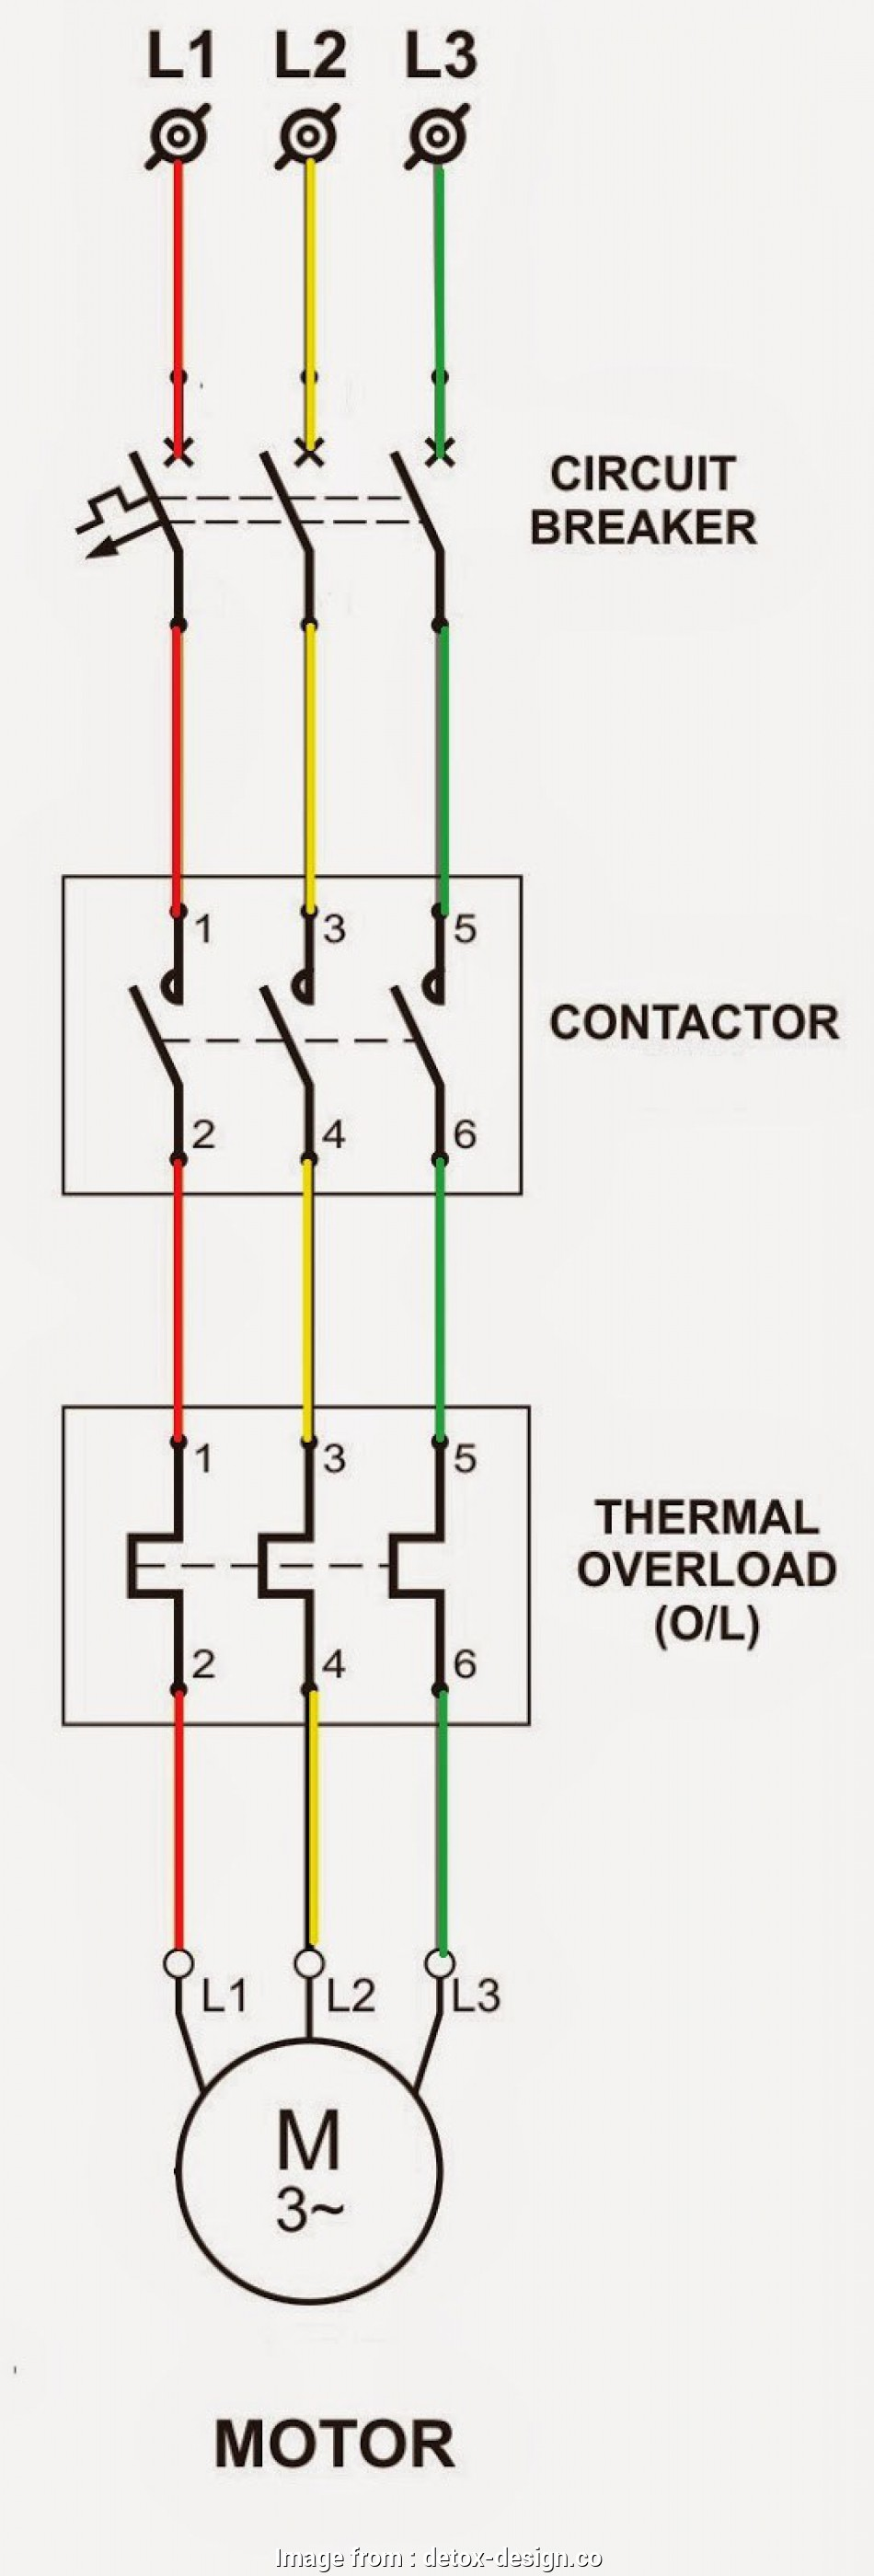 Basic Starter Wiring Diagram Practical Wiring Diagram